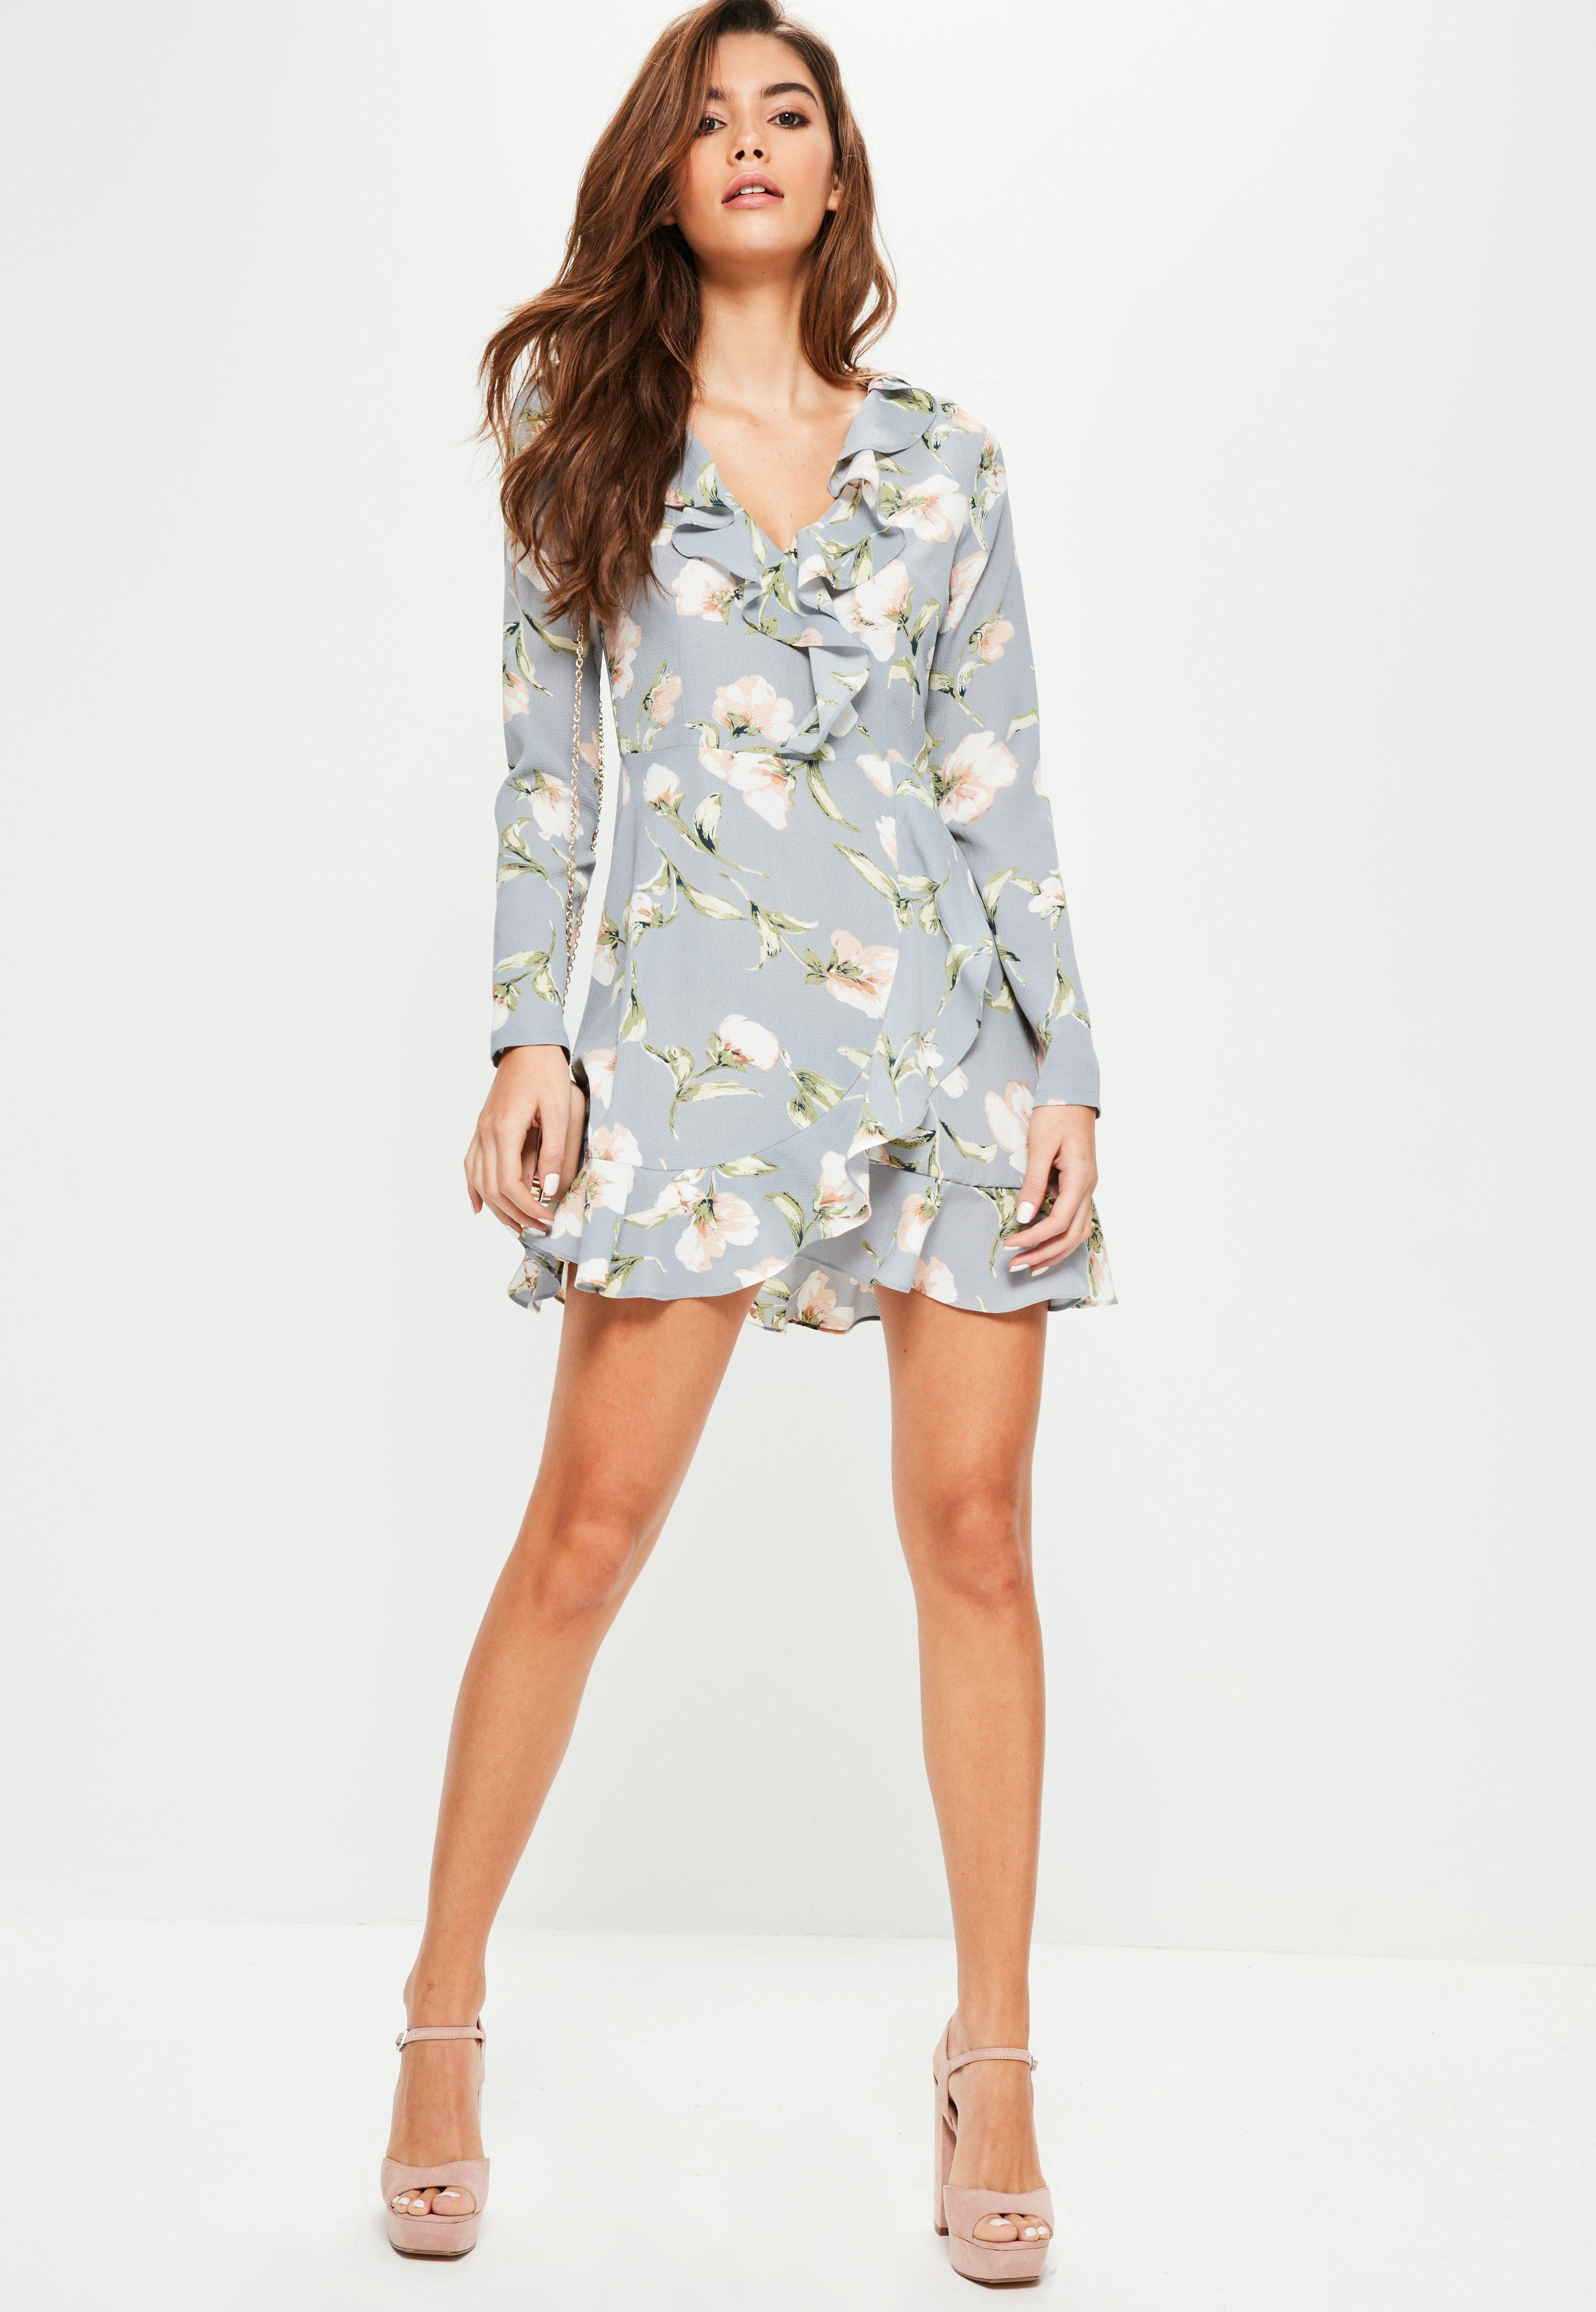 33d573ab5e43 Lyst - Missguided Blue Floral Ruffle Tea Dress in Blue - Save 11%